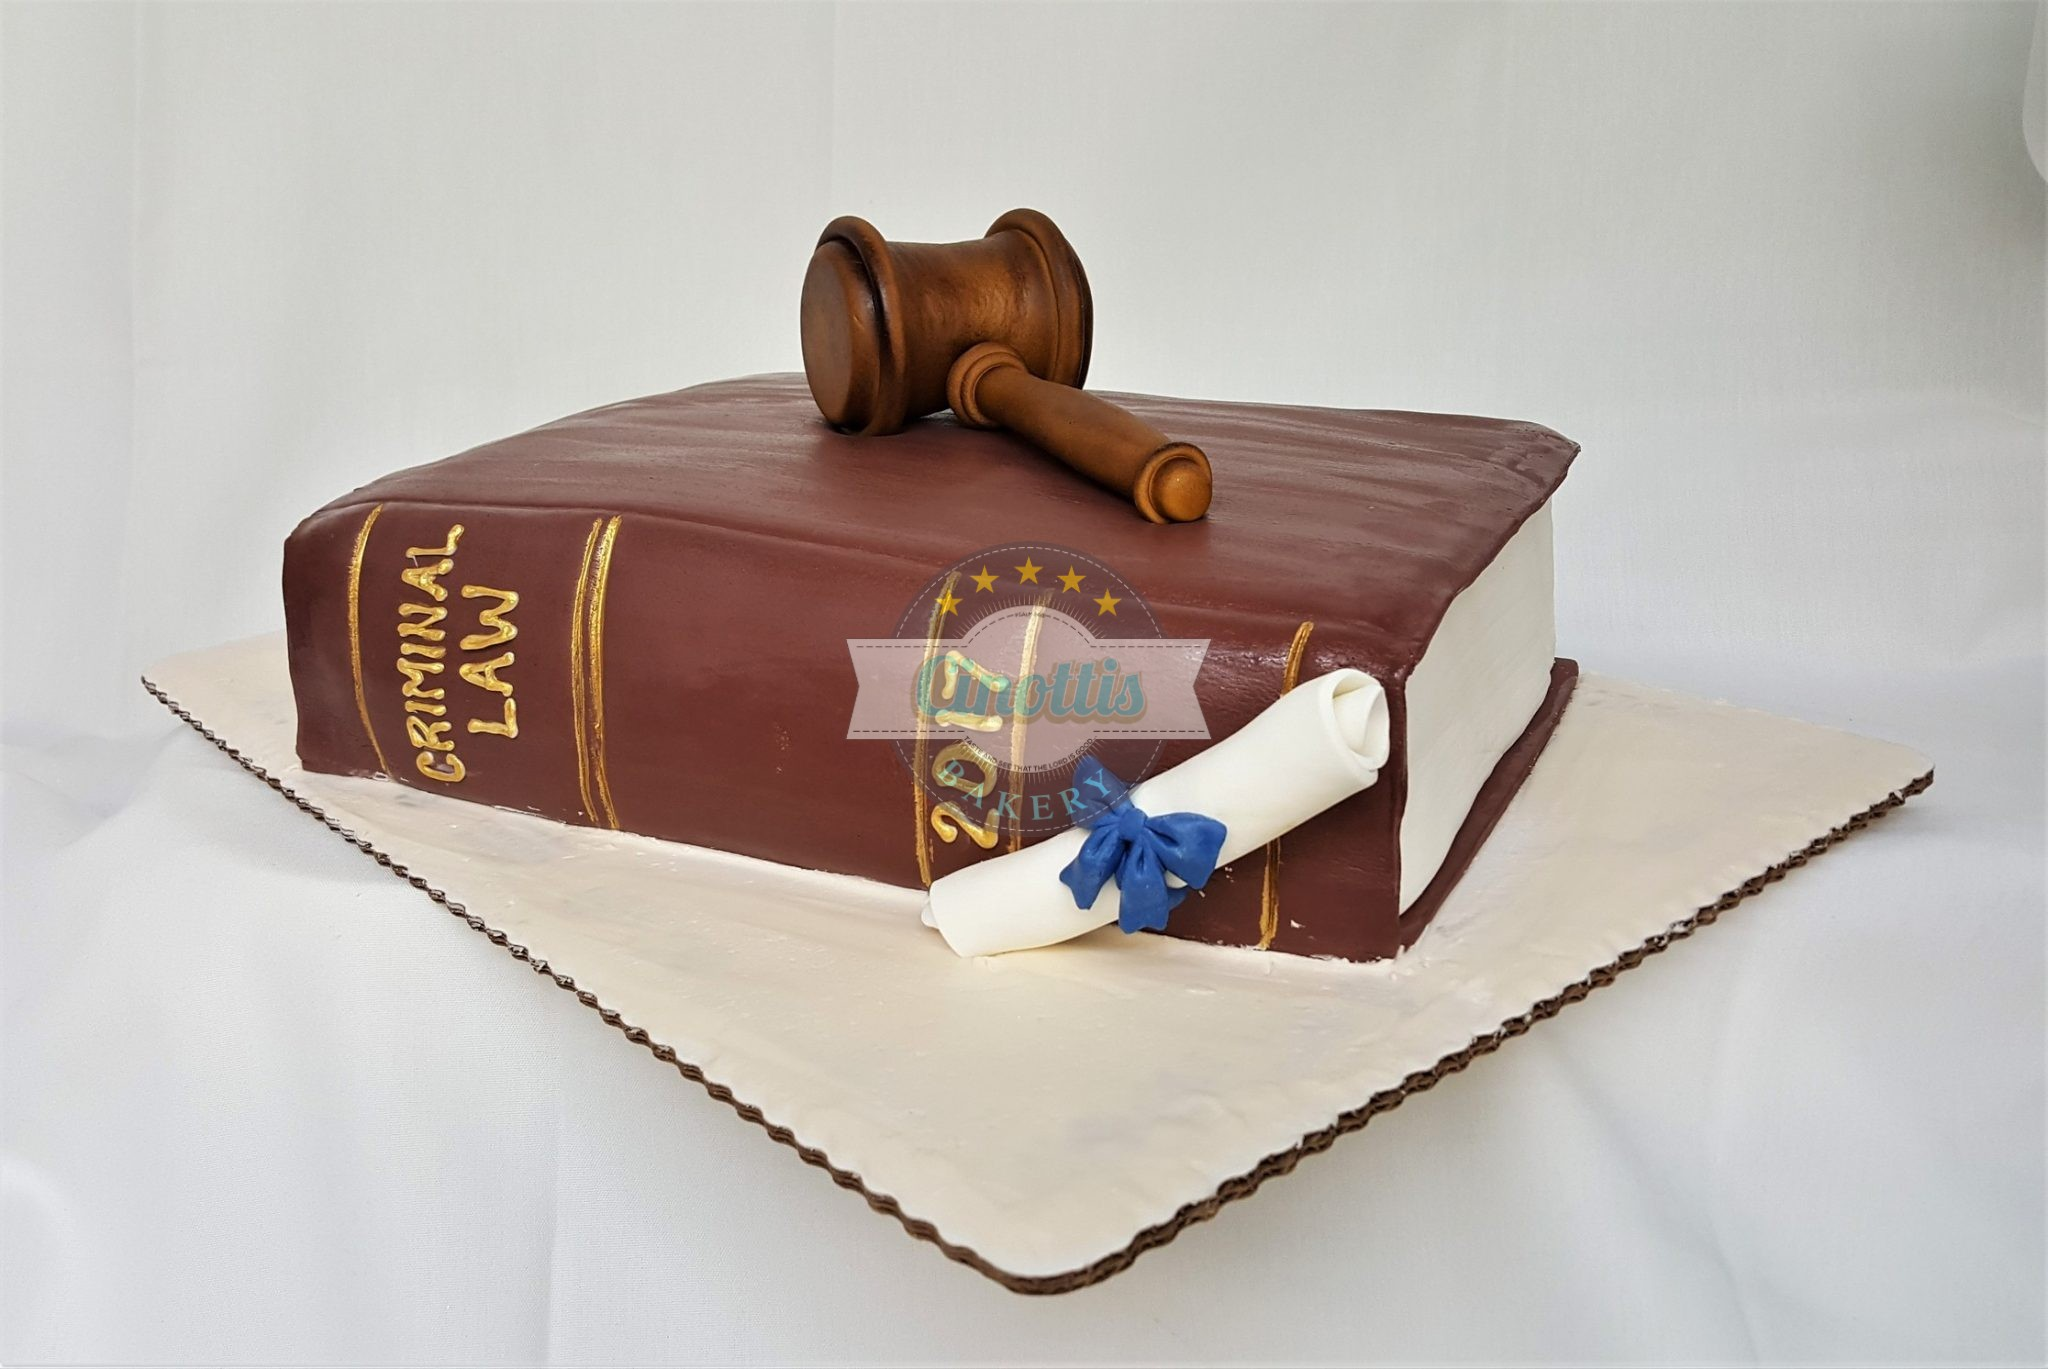 Graduation Books With Diploma- A Celebration Cake From